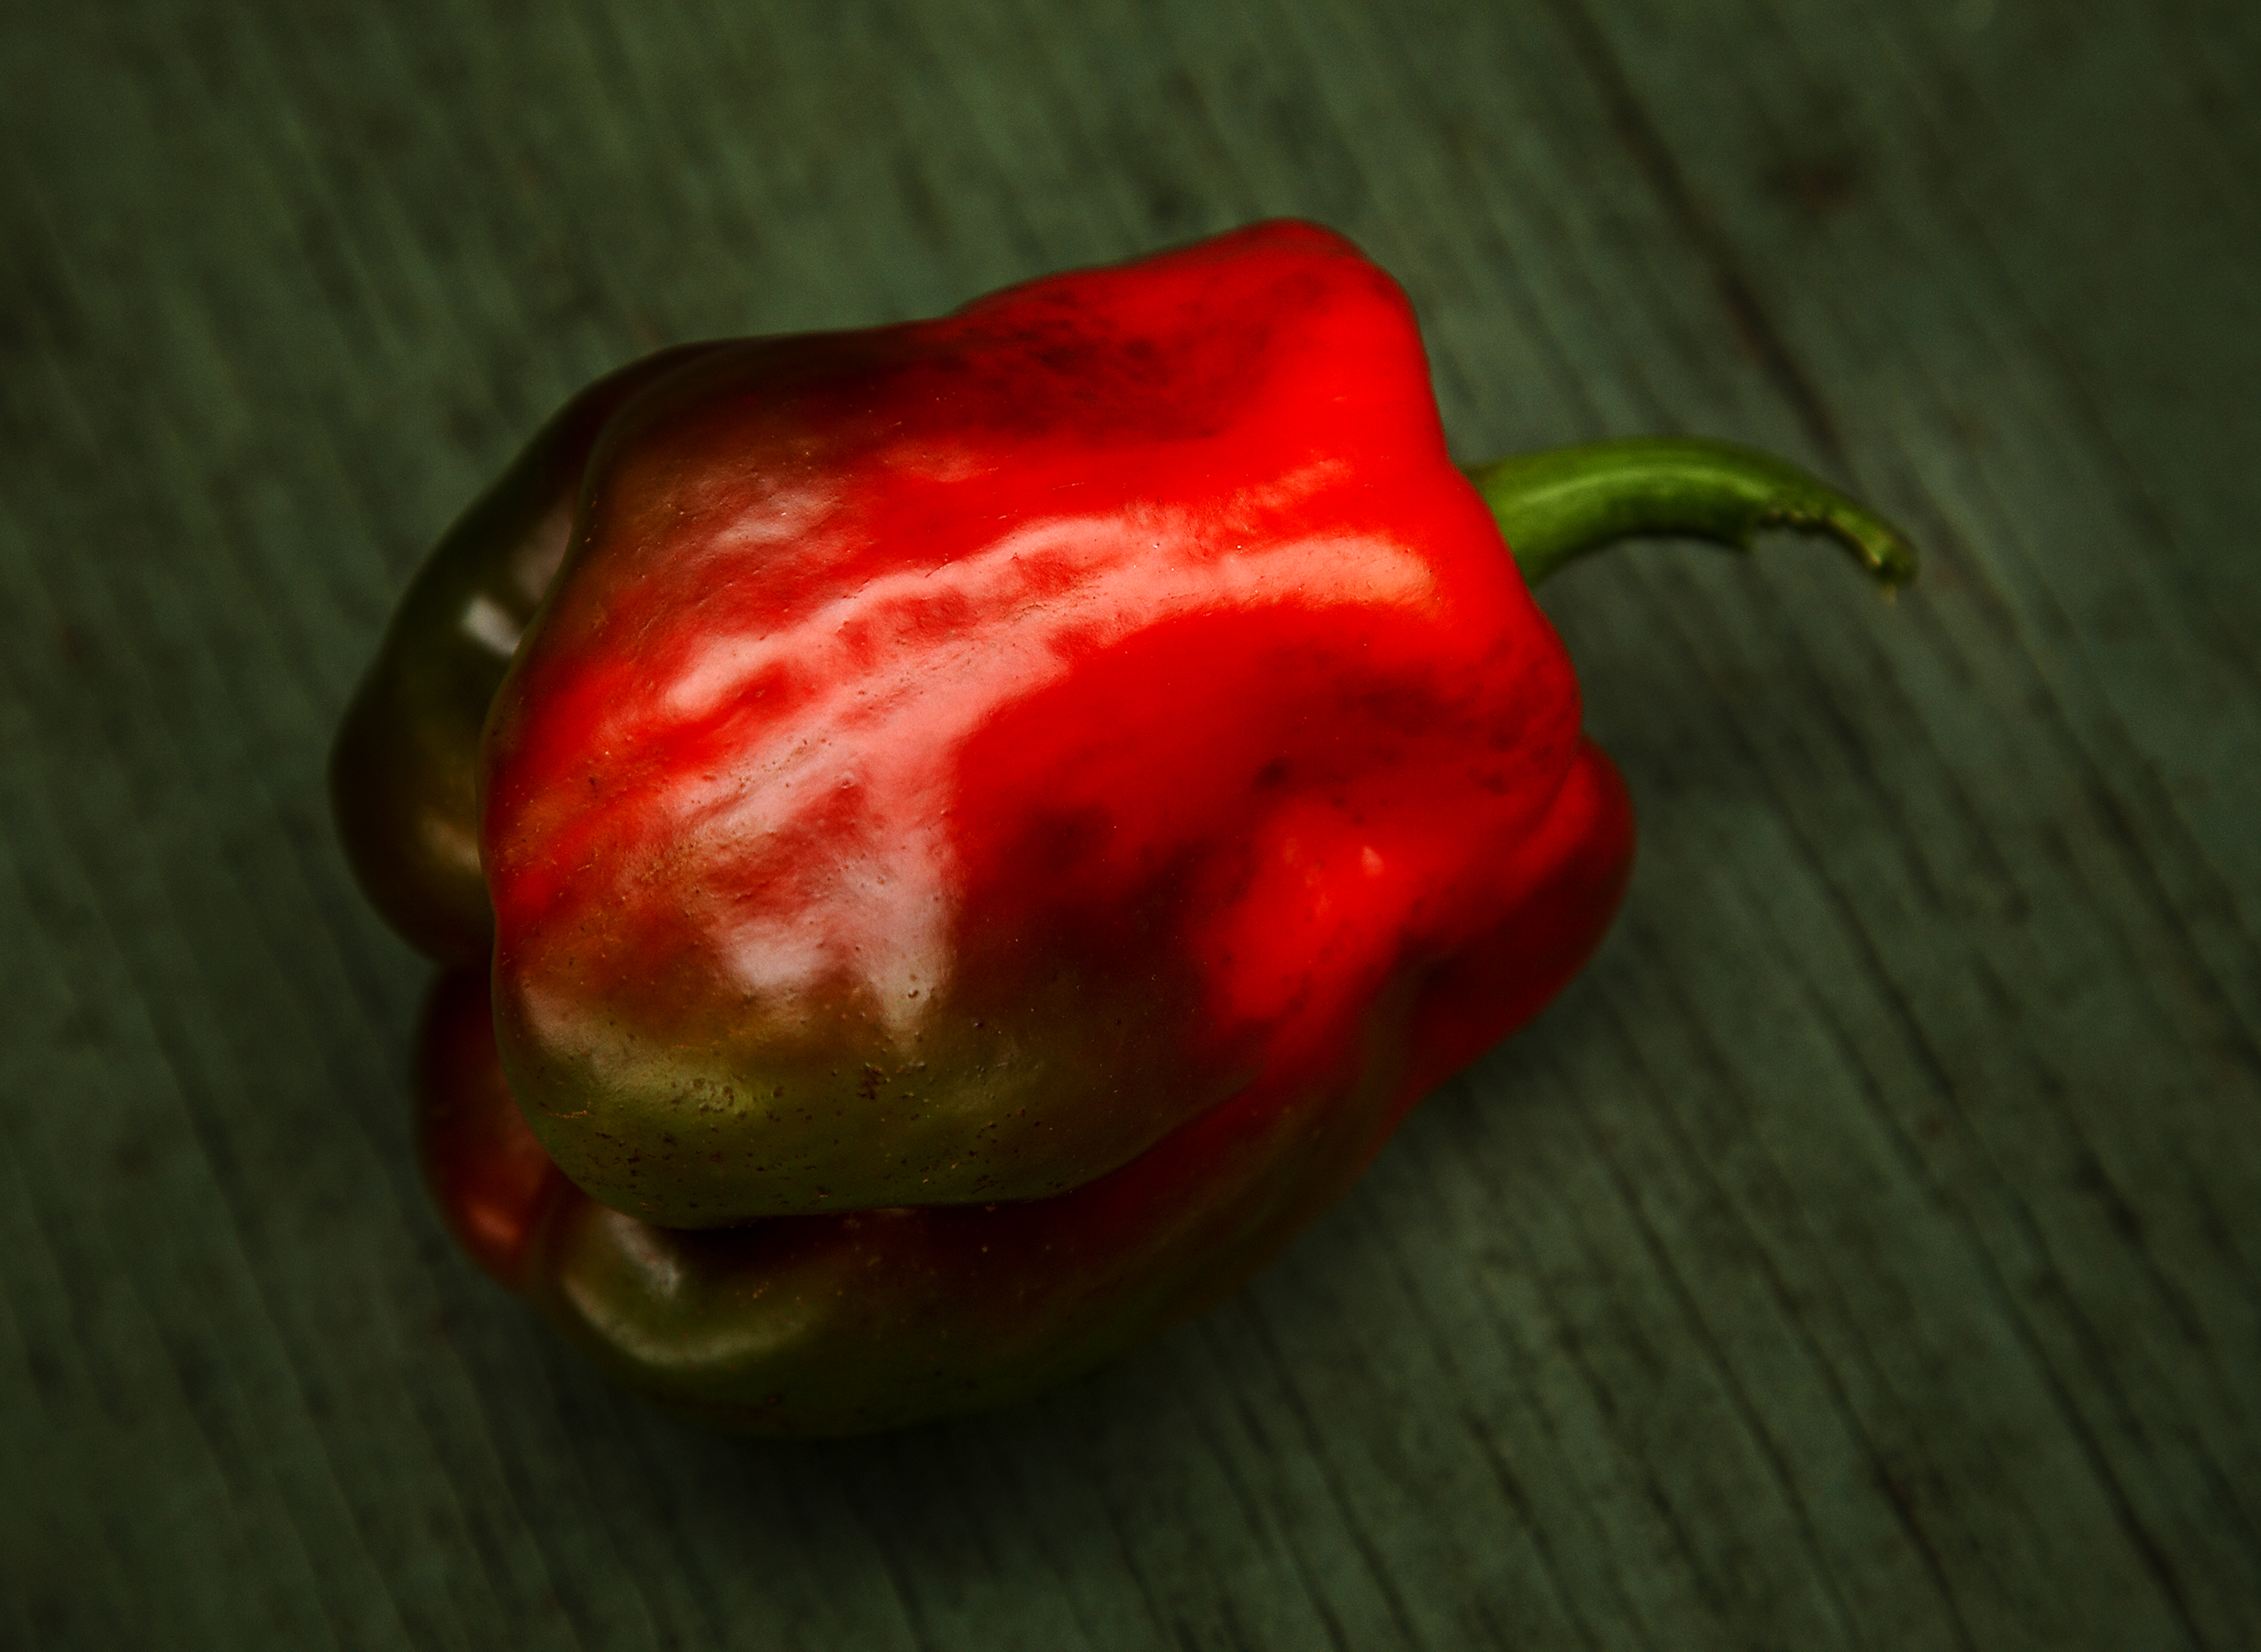 PEPPER_RED BELL_ORGANIC GREEN TABLE WILTSHIRE FARM © JONATHAN R. BECKERMAN PHOTOGRAPHY.jpg